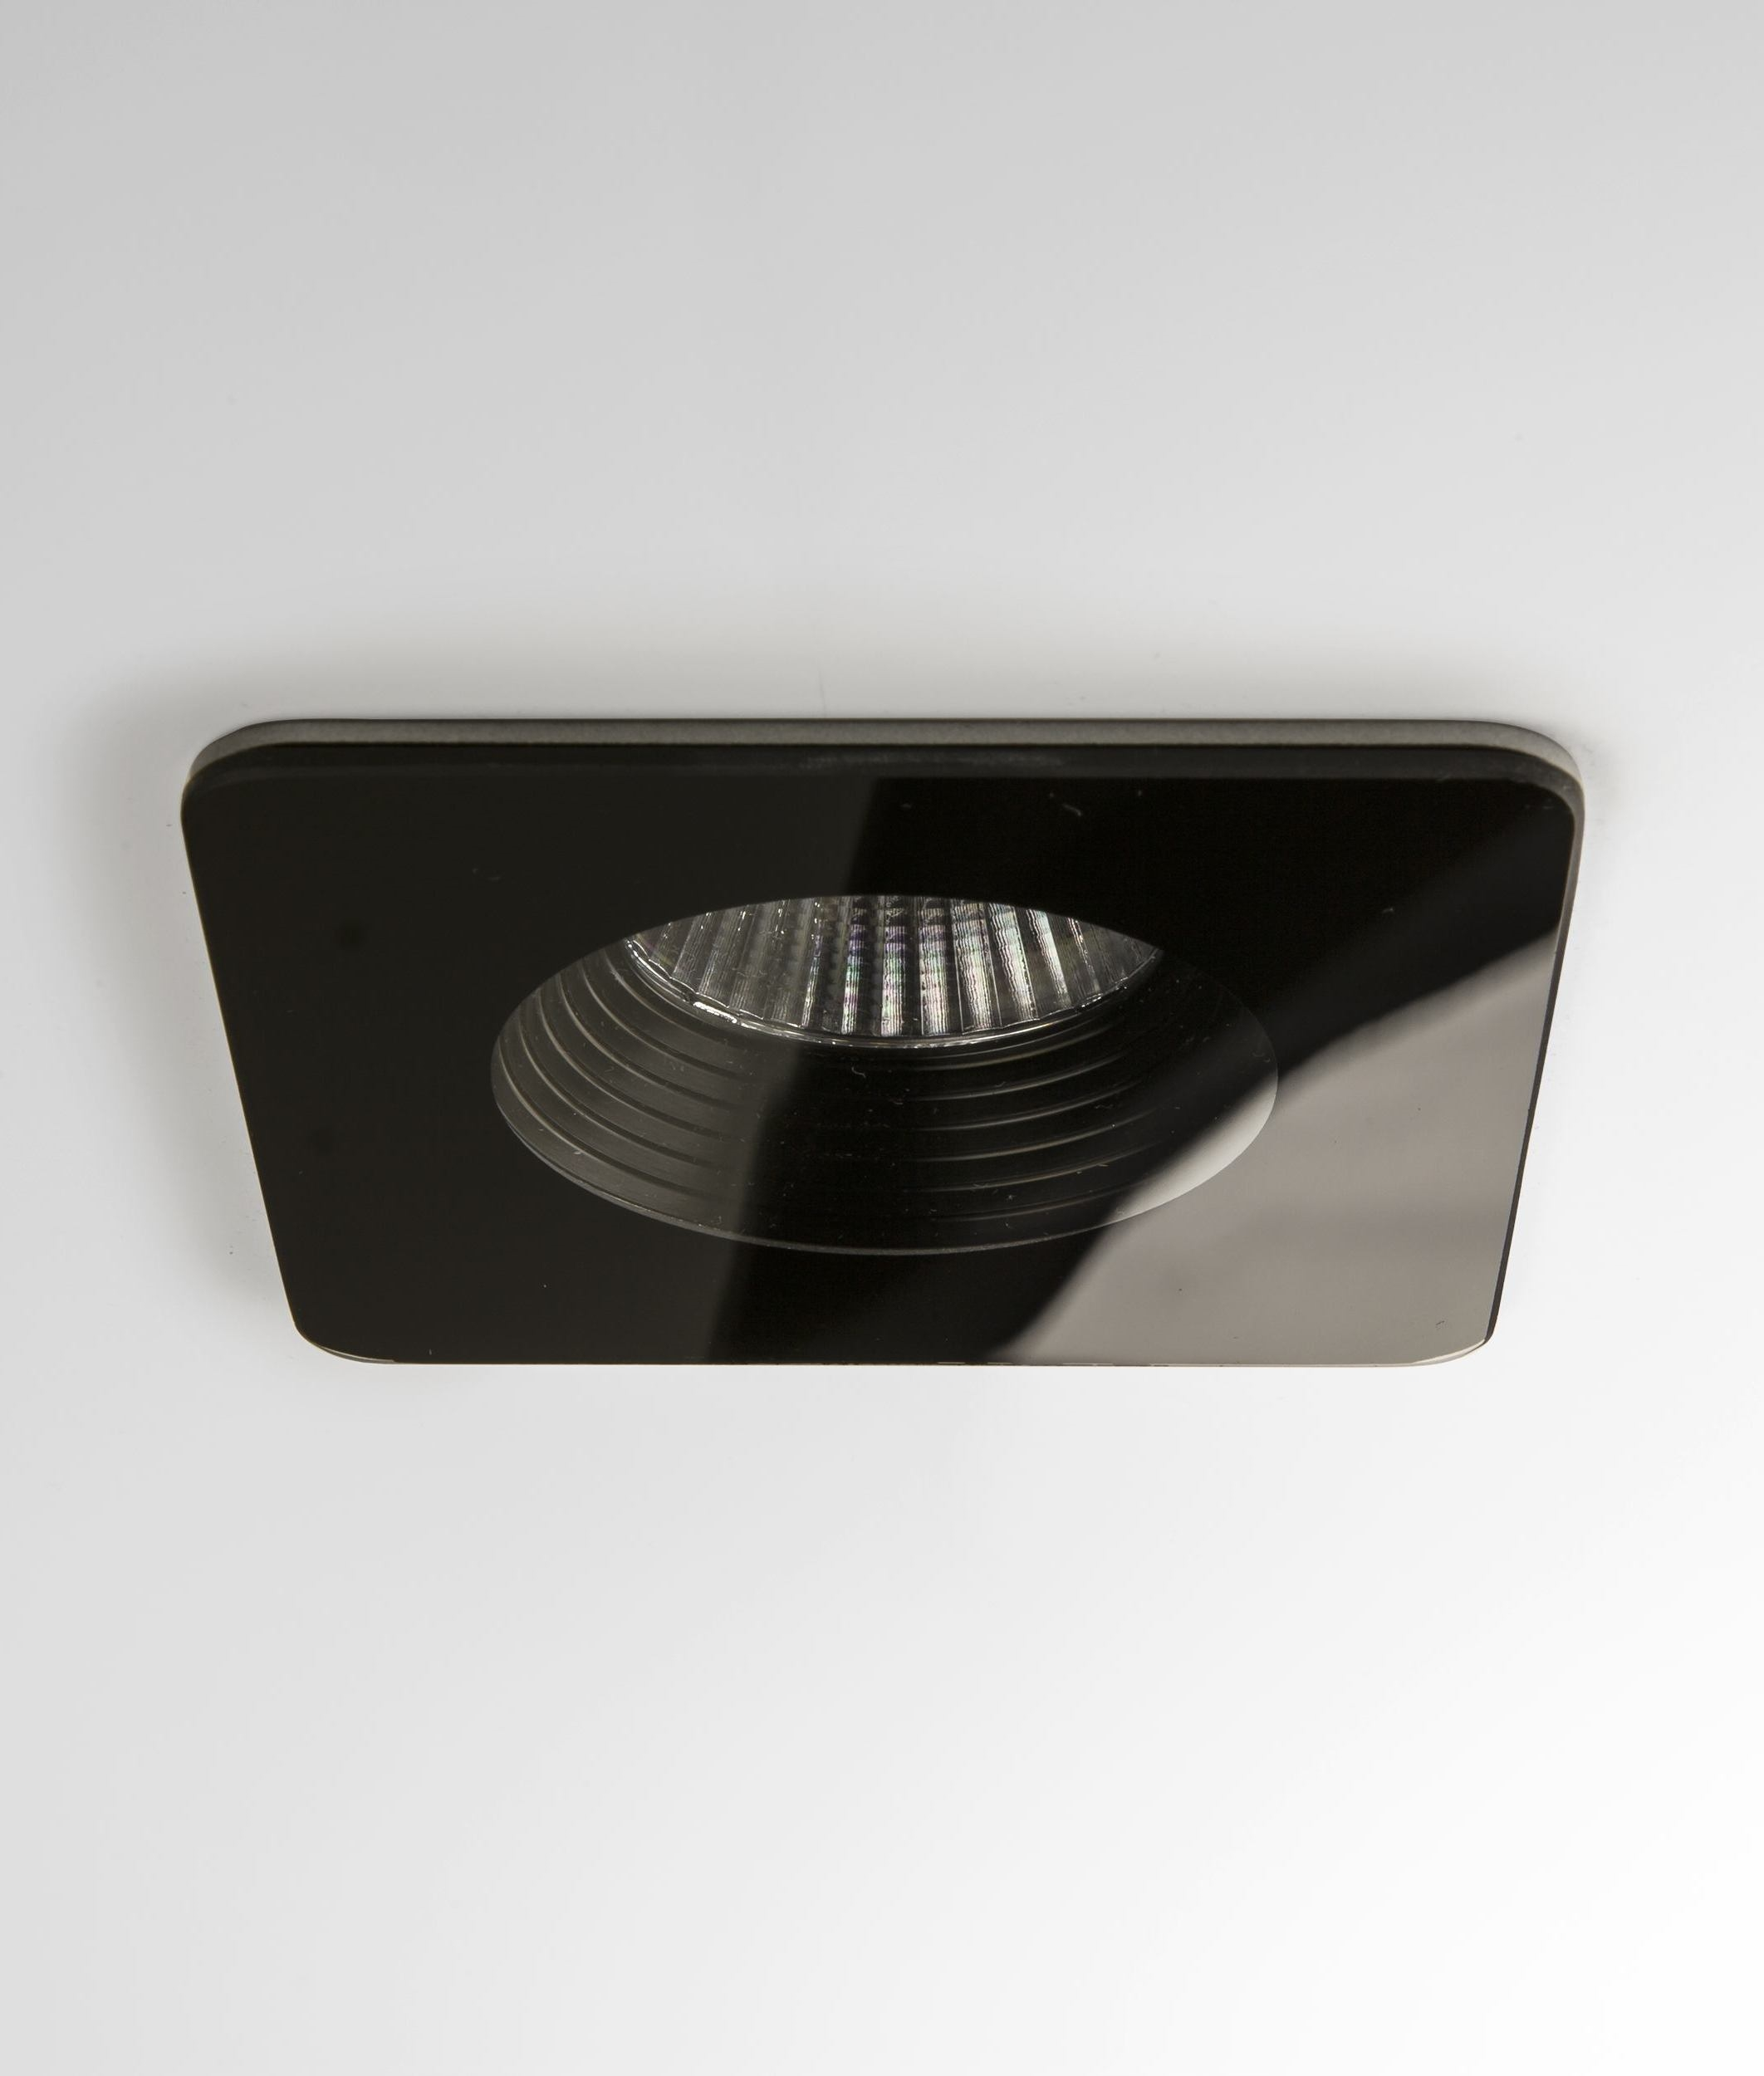 Square Led Fire Rated Glass Led Bathroom Downlight